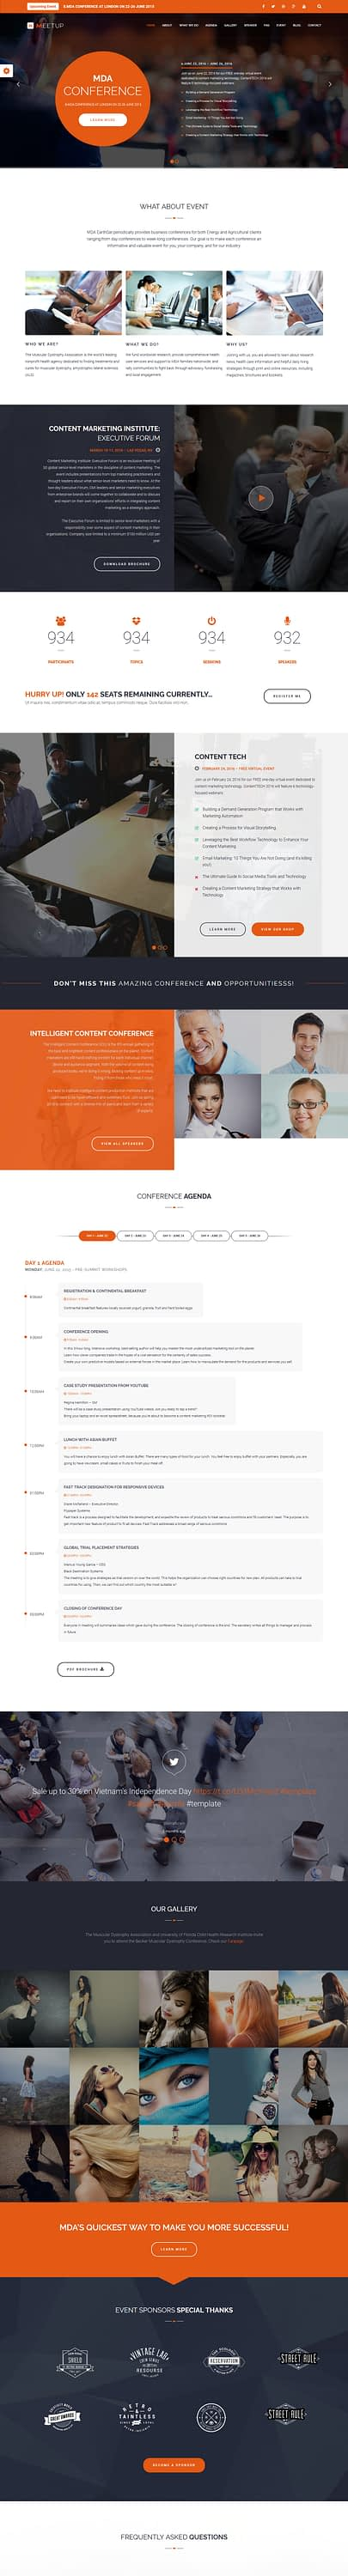 meetup best premium event wordpress theme - 10+ Best Premium Event WordPress Themes and Templates